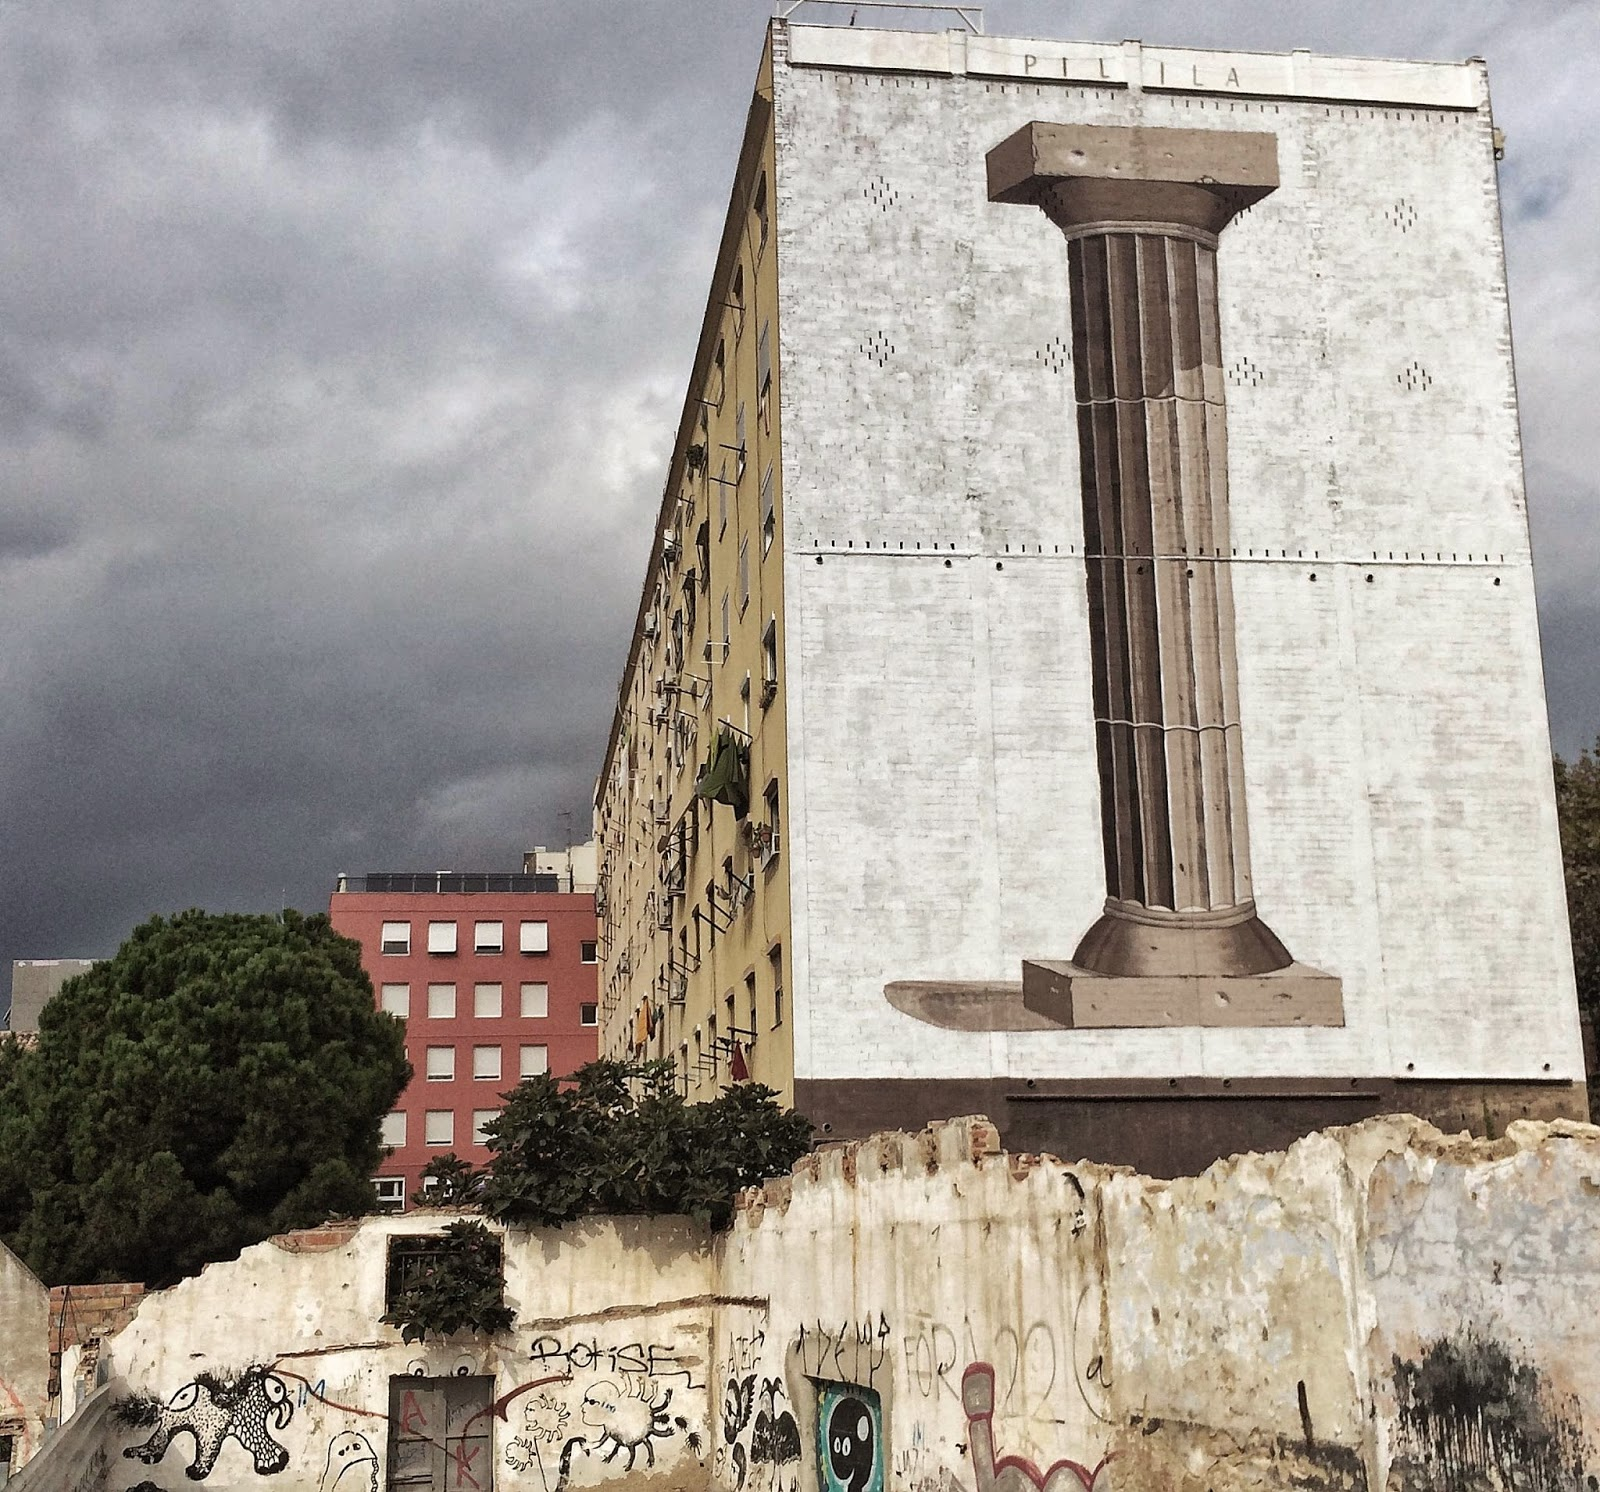 Spanish street art guerillero recently stopped by Barcelona in Spain where he was invited to participate in the Open Walls Conference 2014.